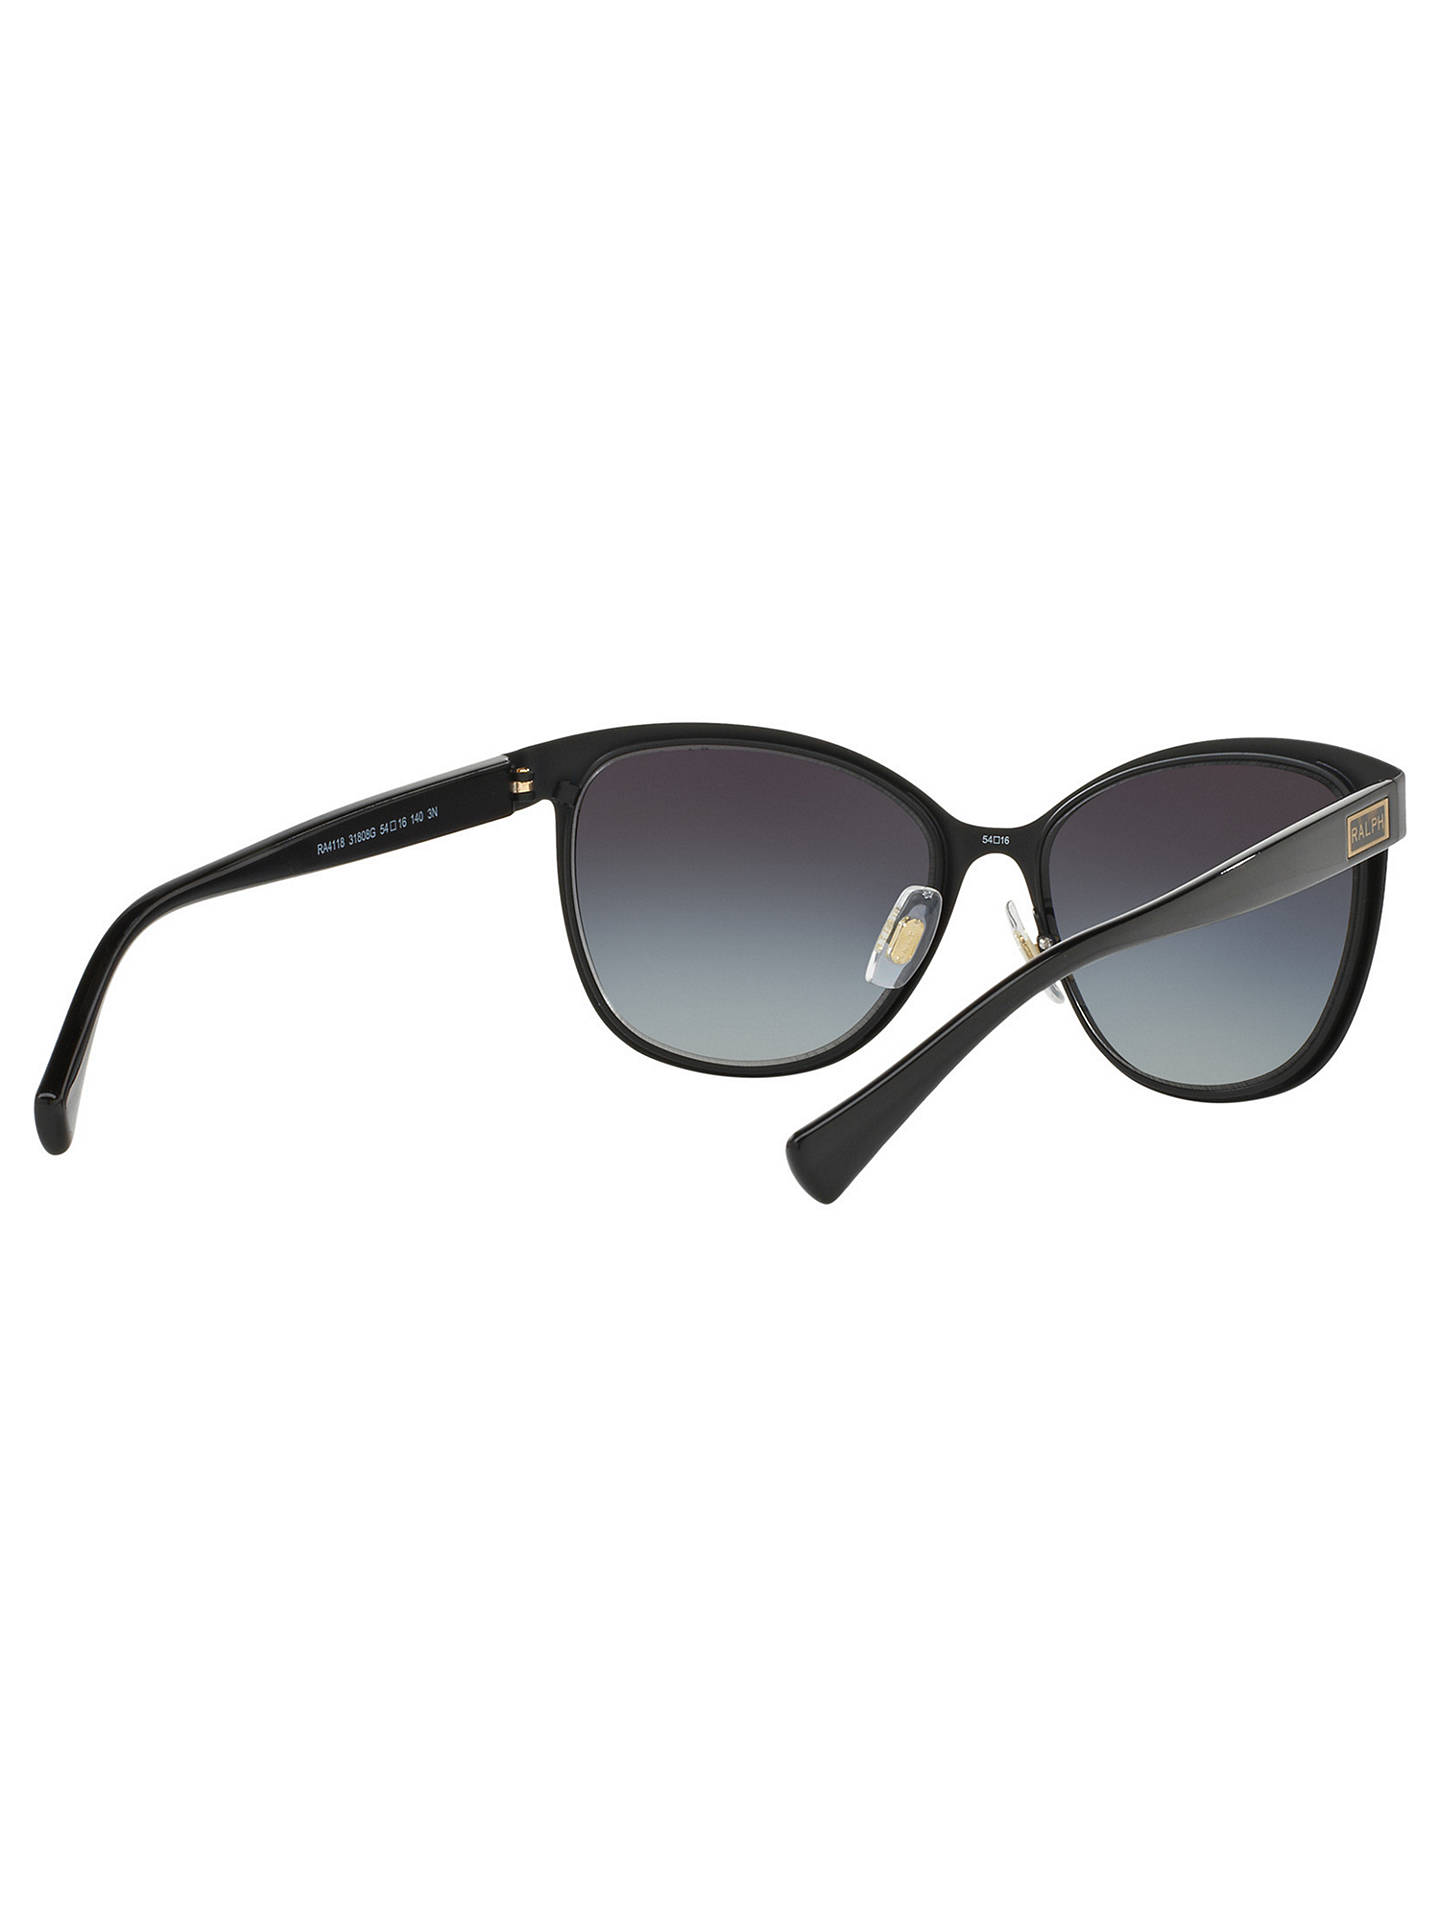 Buy Ralph RA4118 Cat's Eye Sunglasses, Black/Grey Gradient Online at johnlewis.com